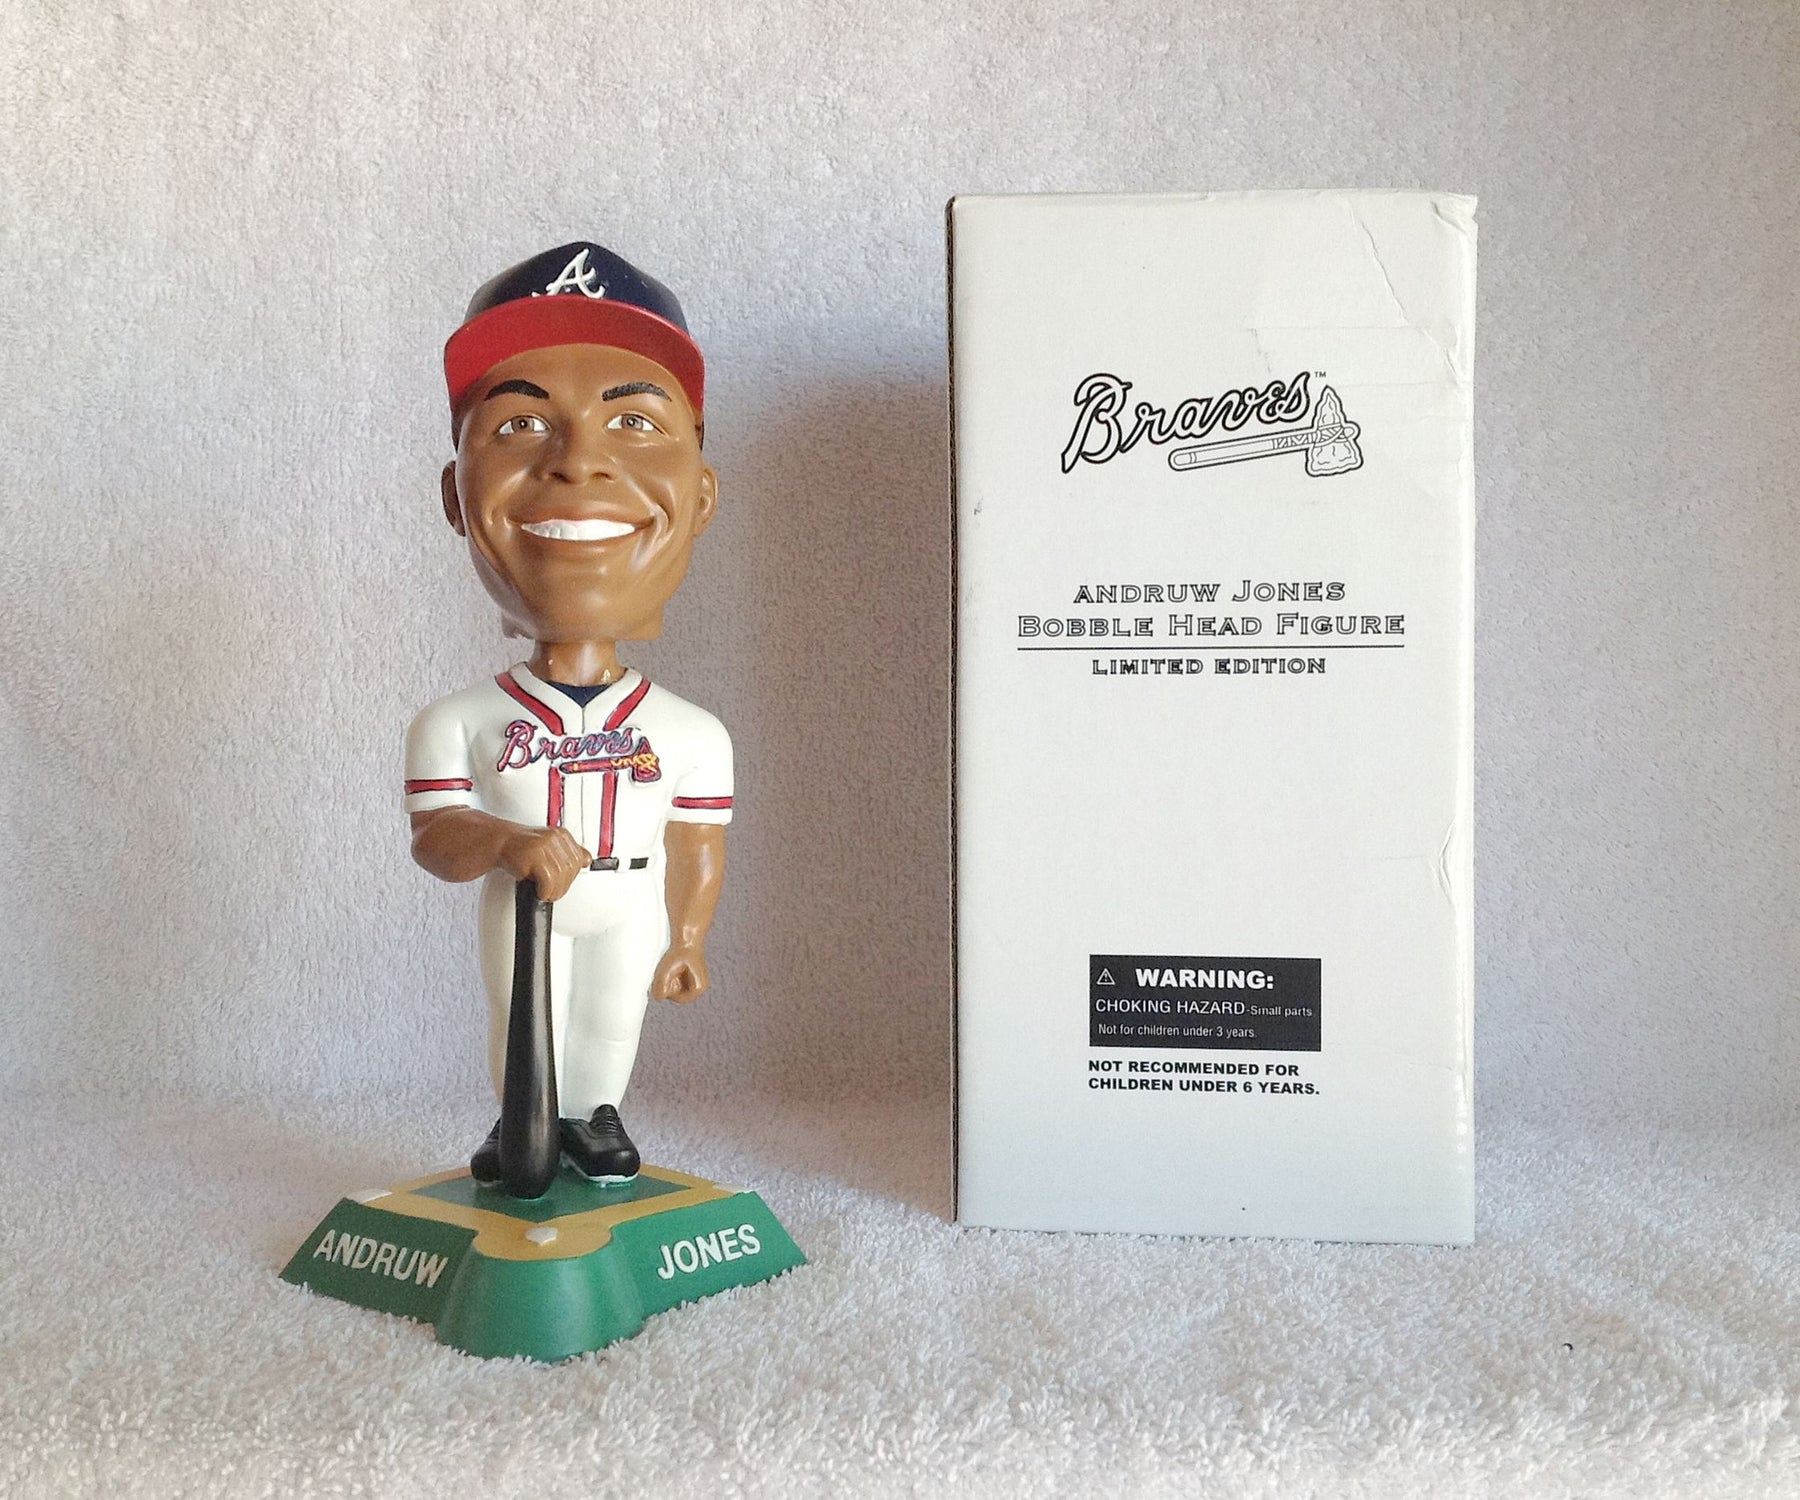 Andruw Jones Bobblehead - BobblesGalore